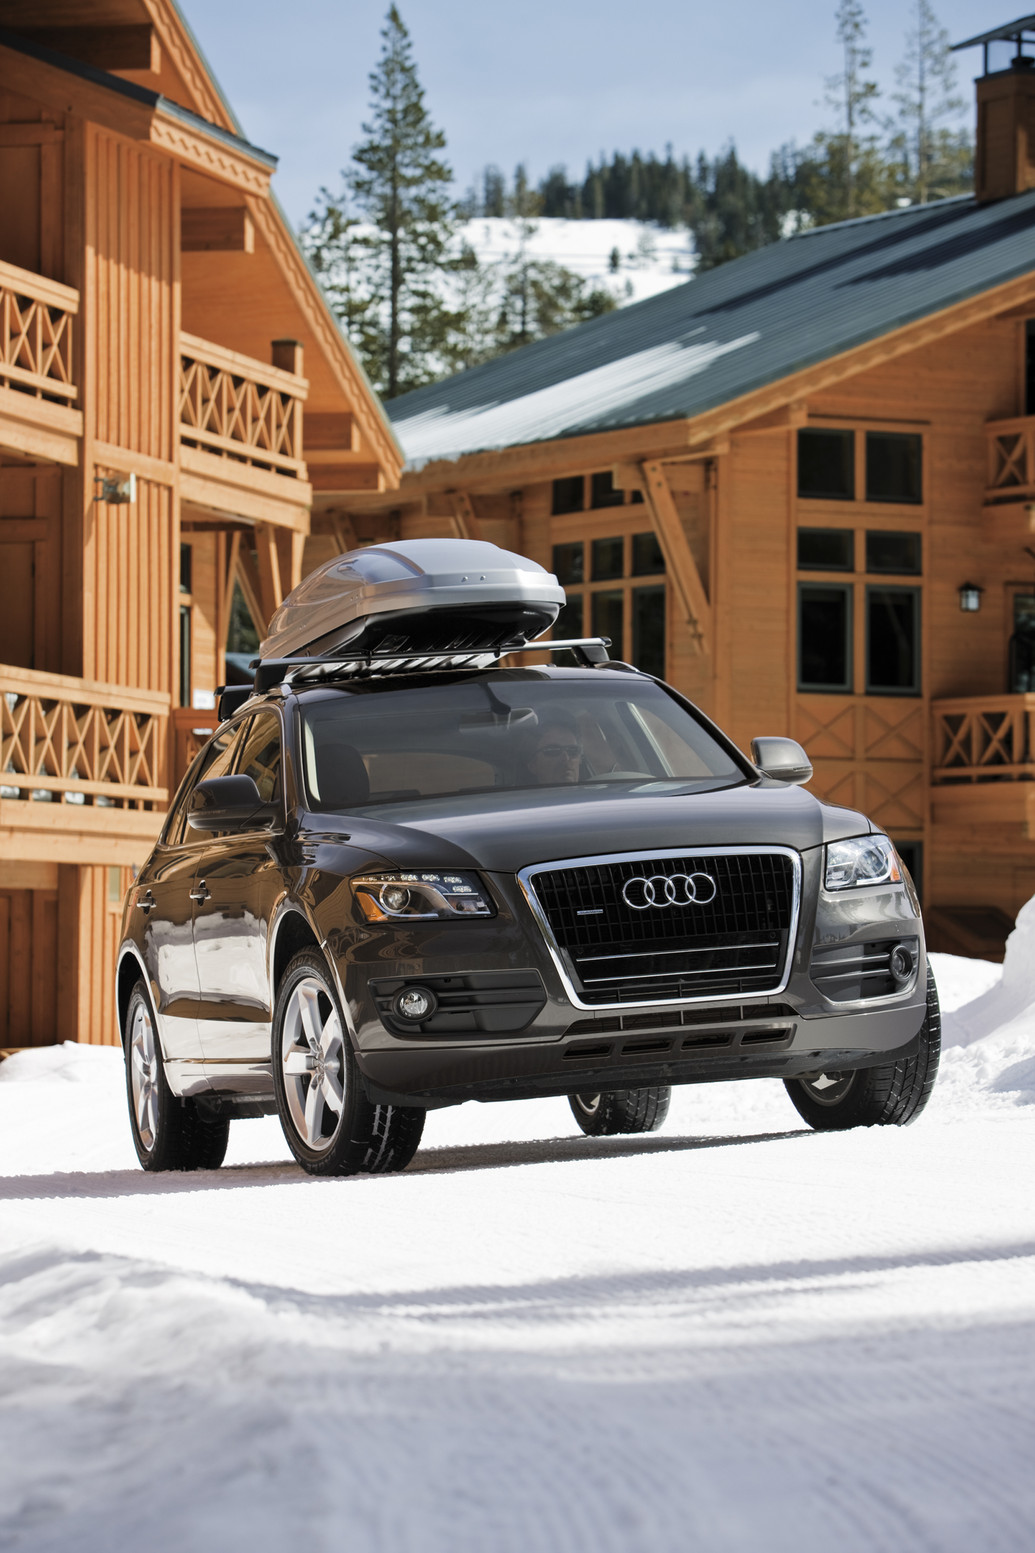 2011 Audi Q5 Reviews Price Photos Specifications